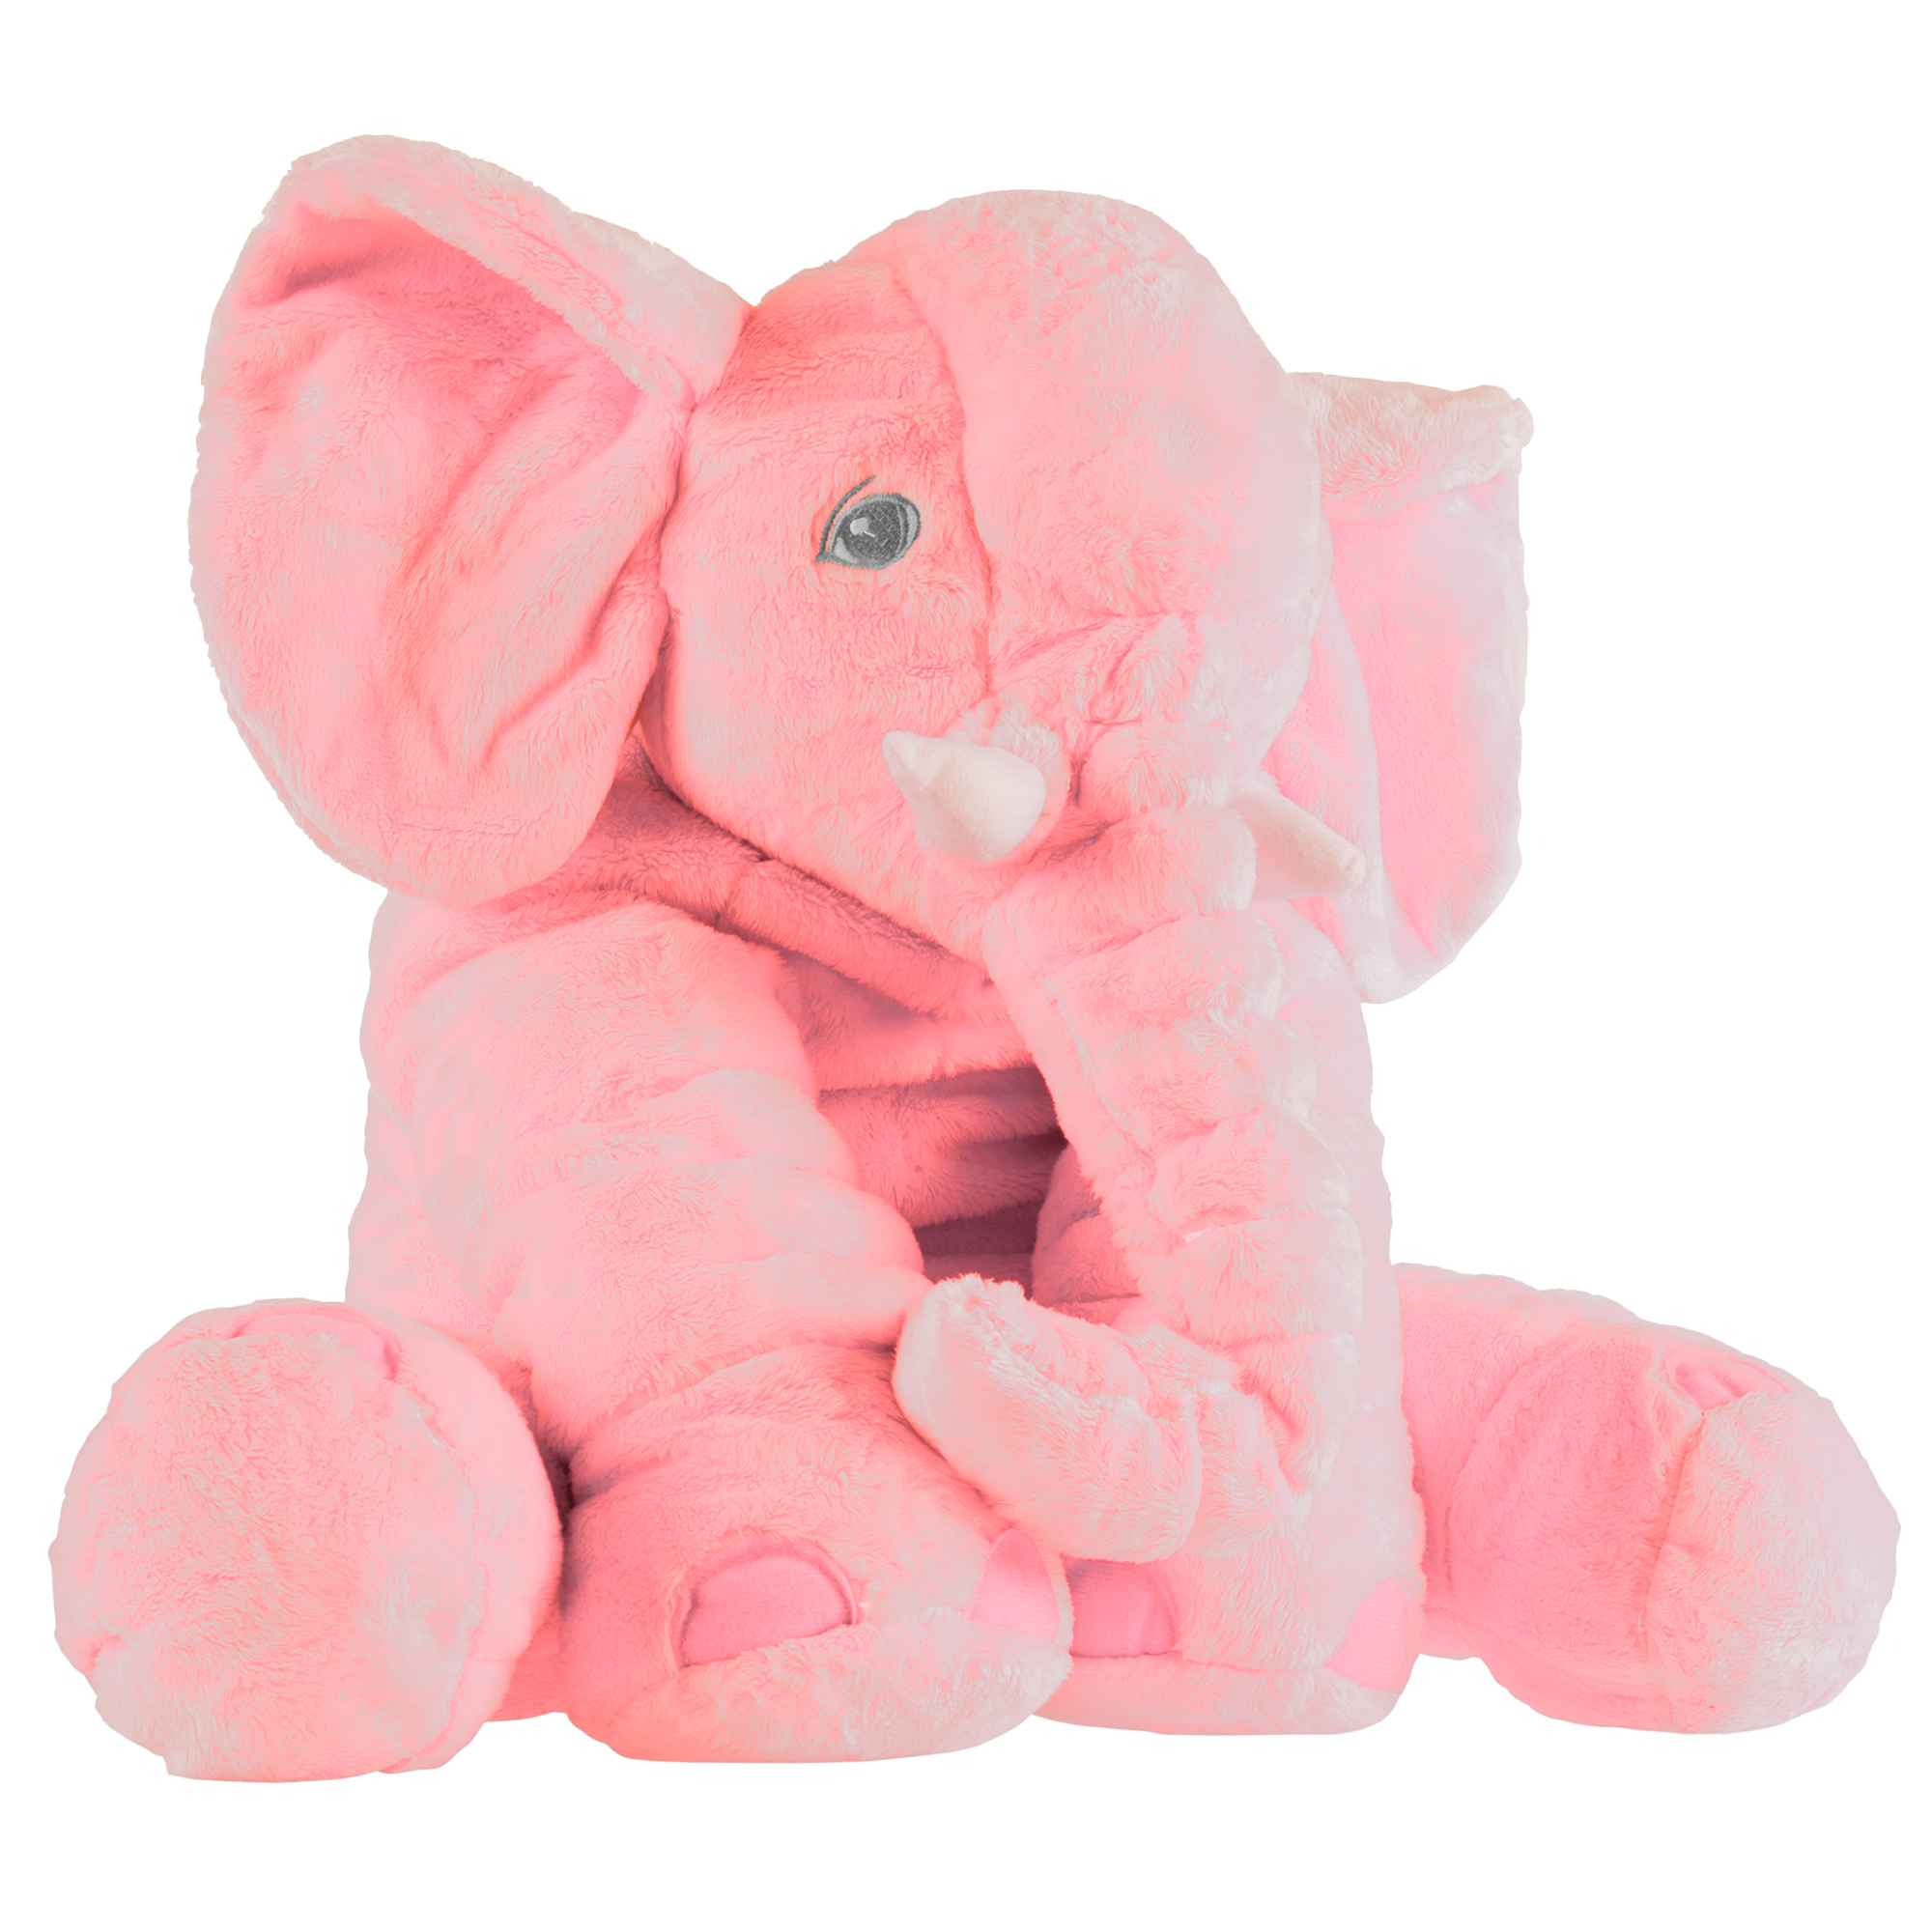 Elephant Stuffed Animal Toy- Plush, Soft Animal Pillow Friend for Infants, Toddlers, Boys, Girls and Adults by Happy Trails (Pink)